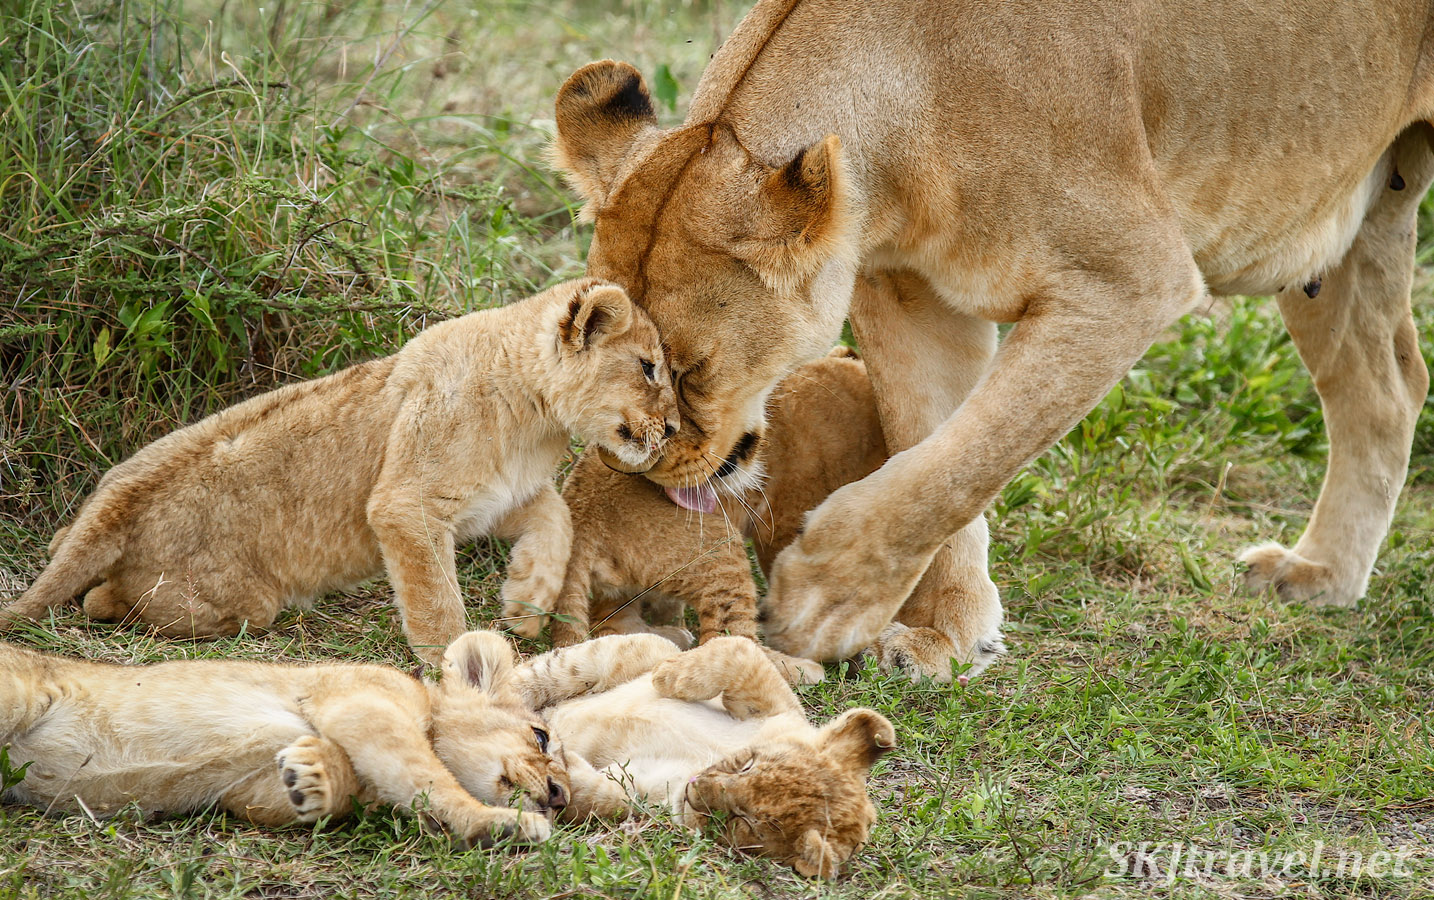 Mother lioness and very young cub nuzzling heads together. Ndutu, Tanzania.